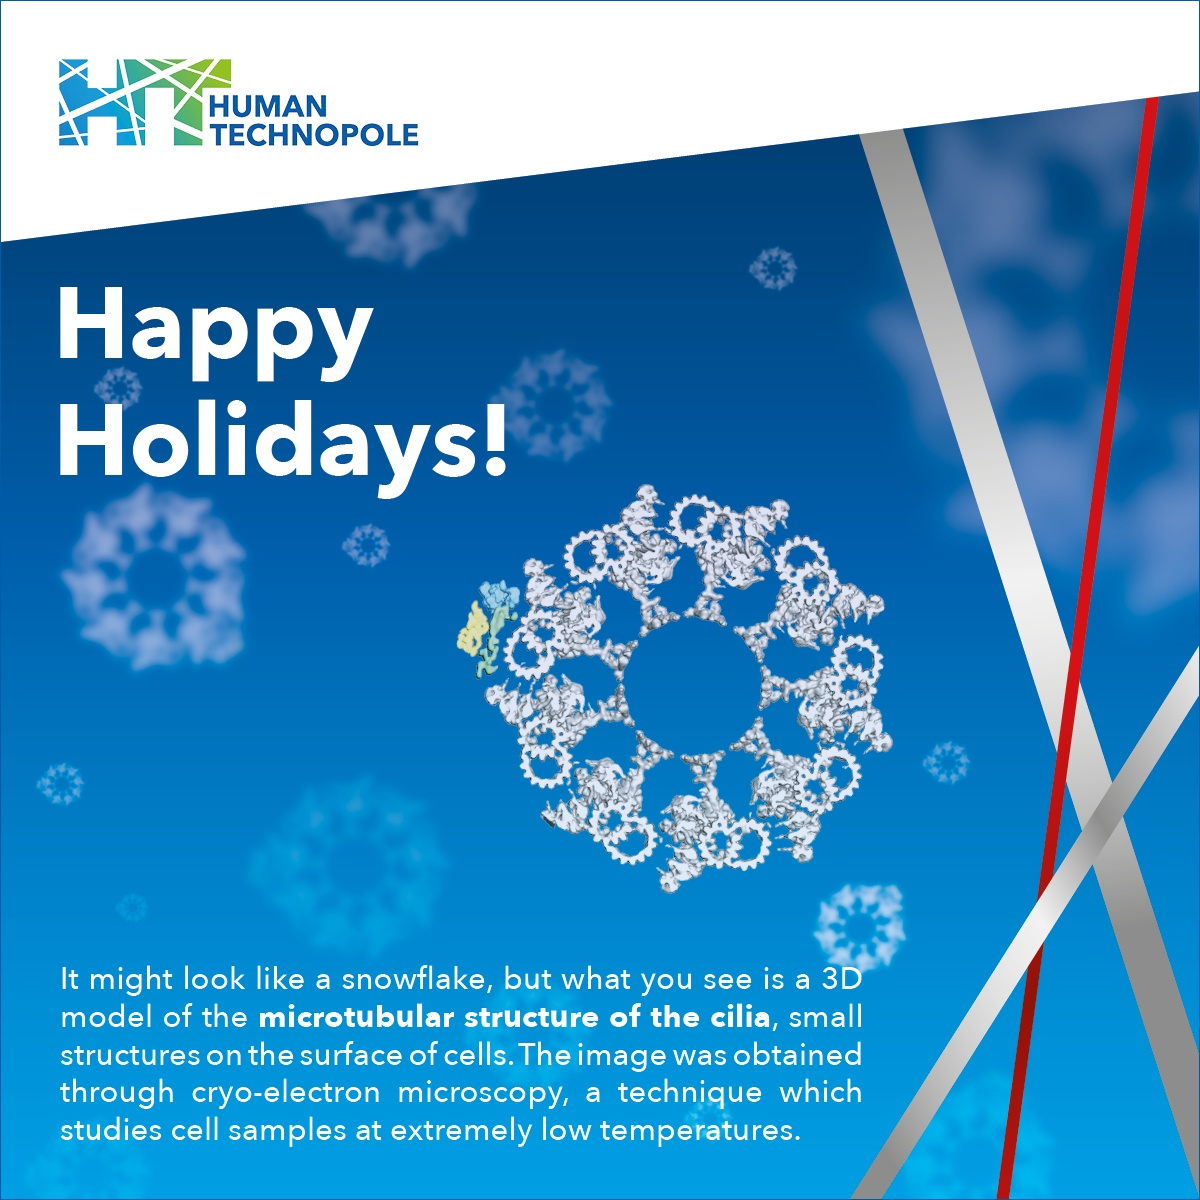 Happy holidays from Human Technopole!